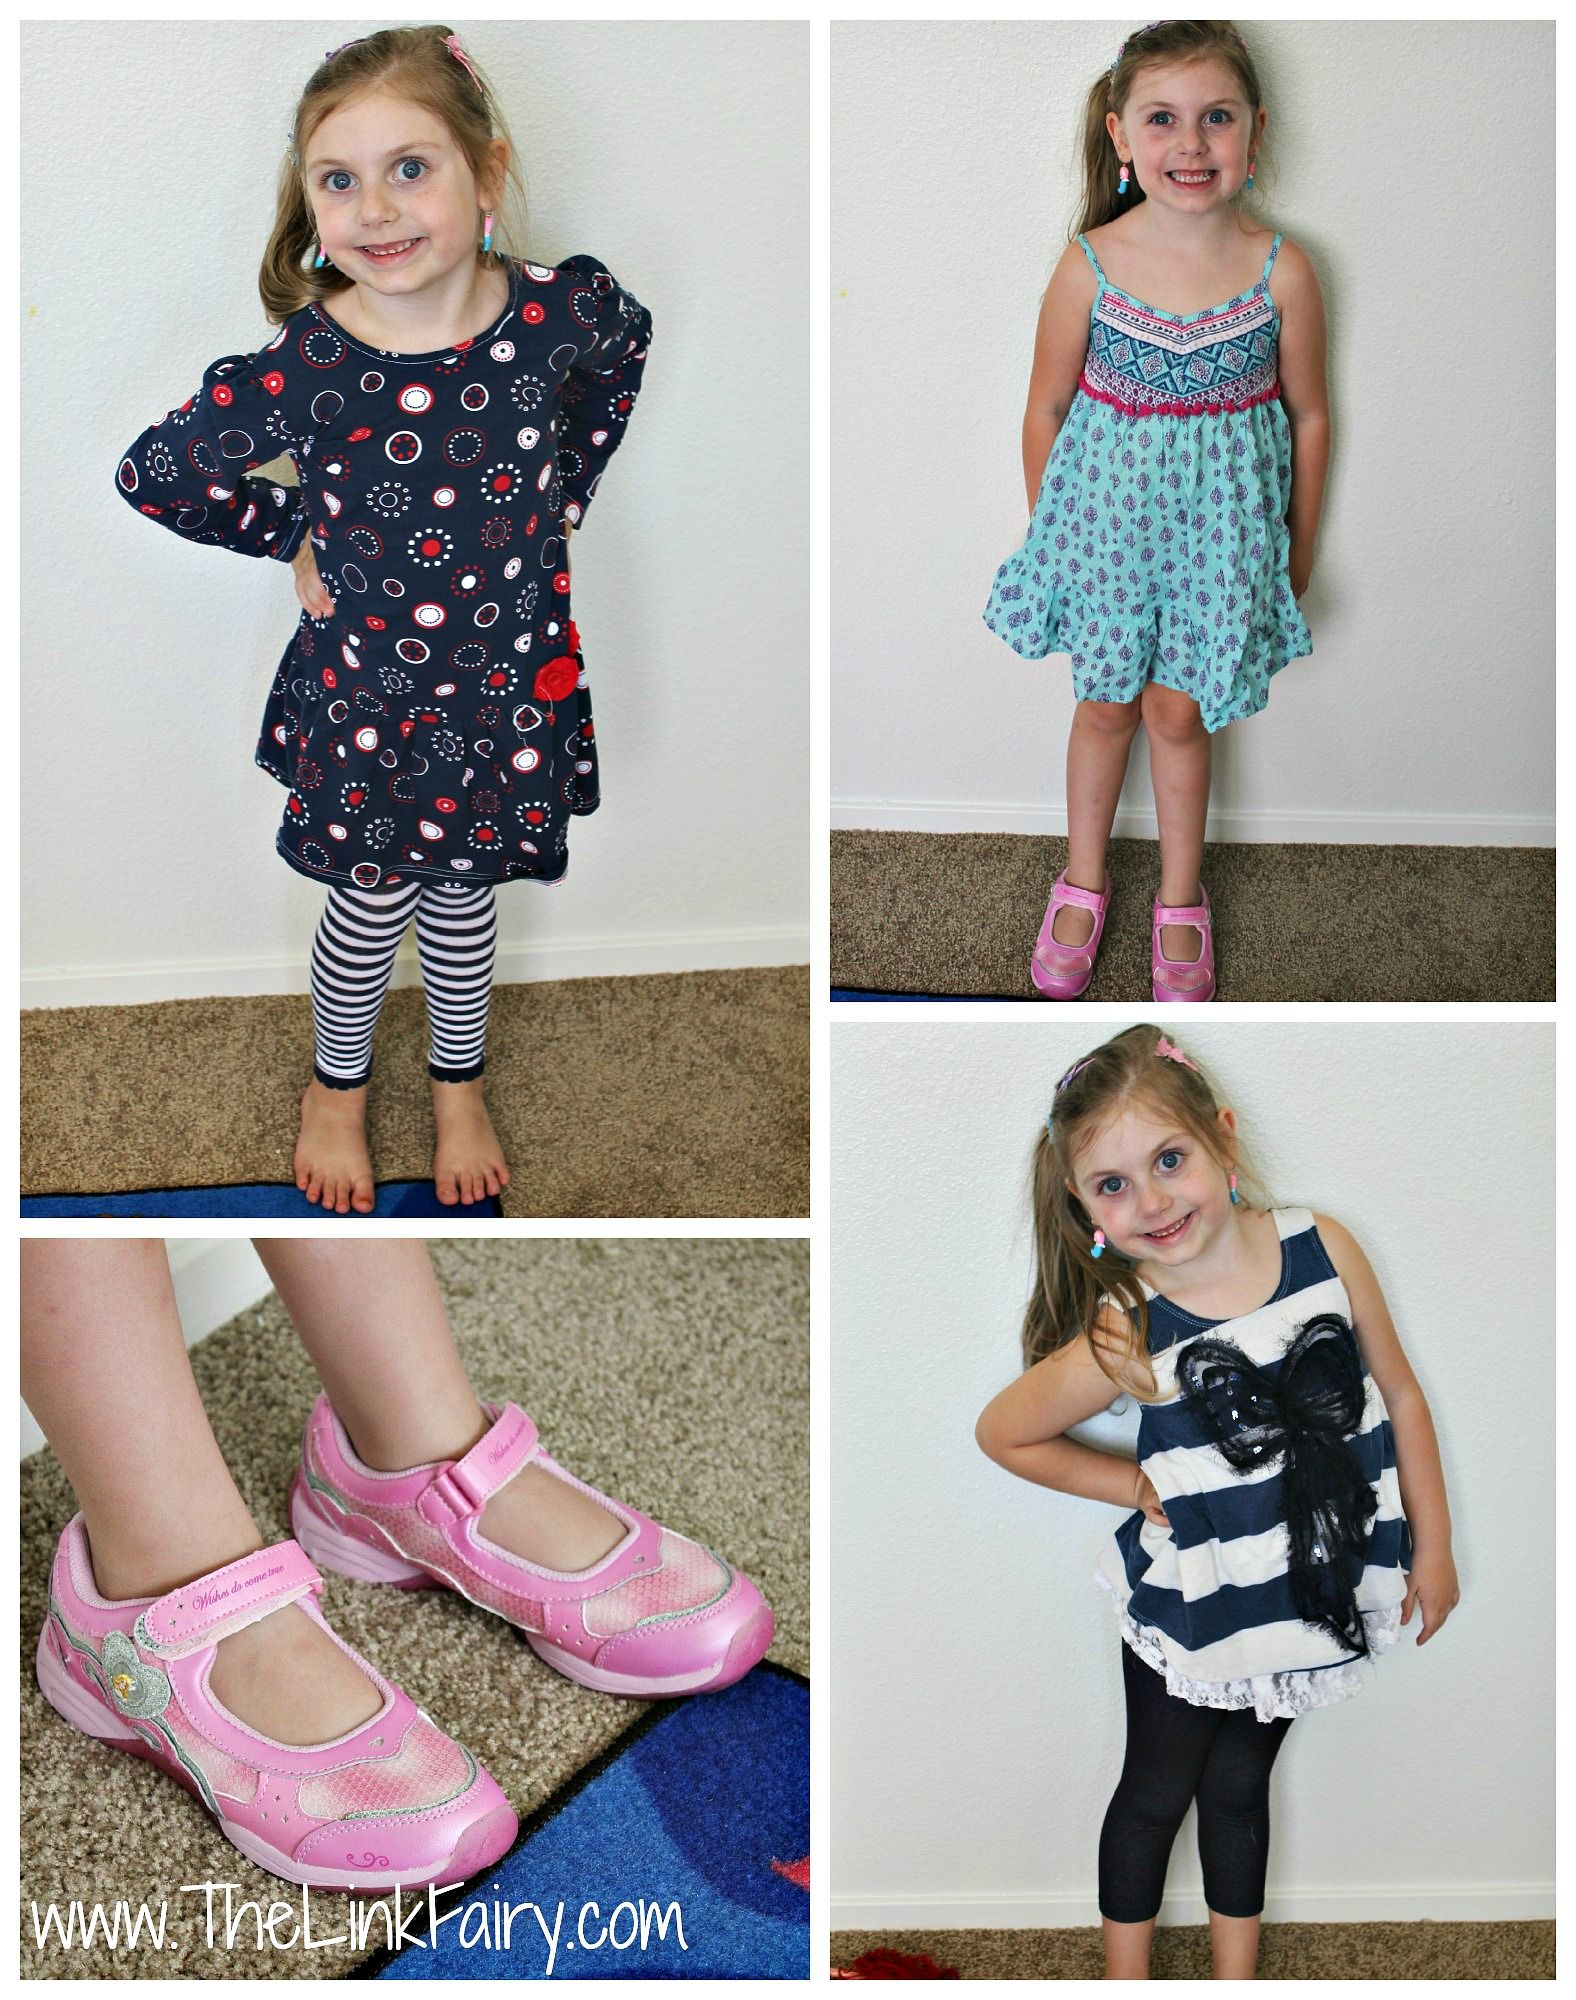 My kids are loving their new clothes from Zappos.com and I love the convenience of shopping big brands from home! #MC #ZapposStyle #Sponsored